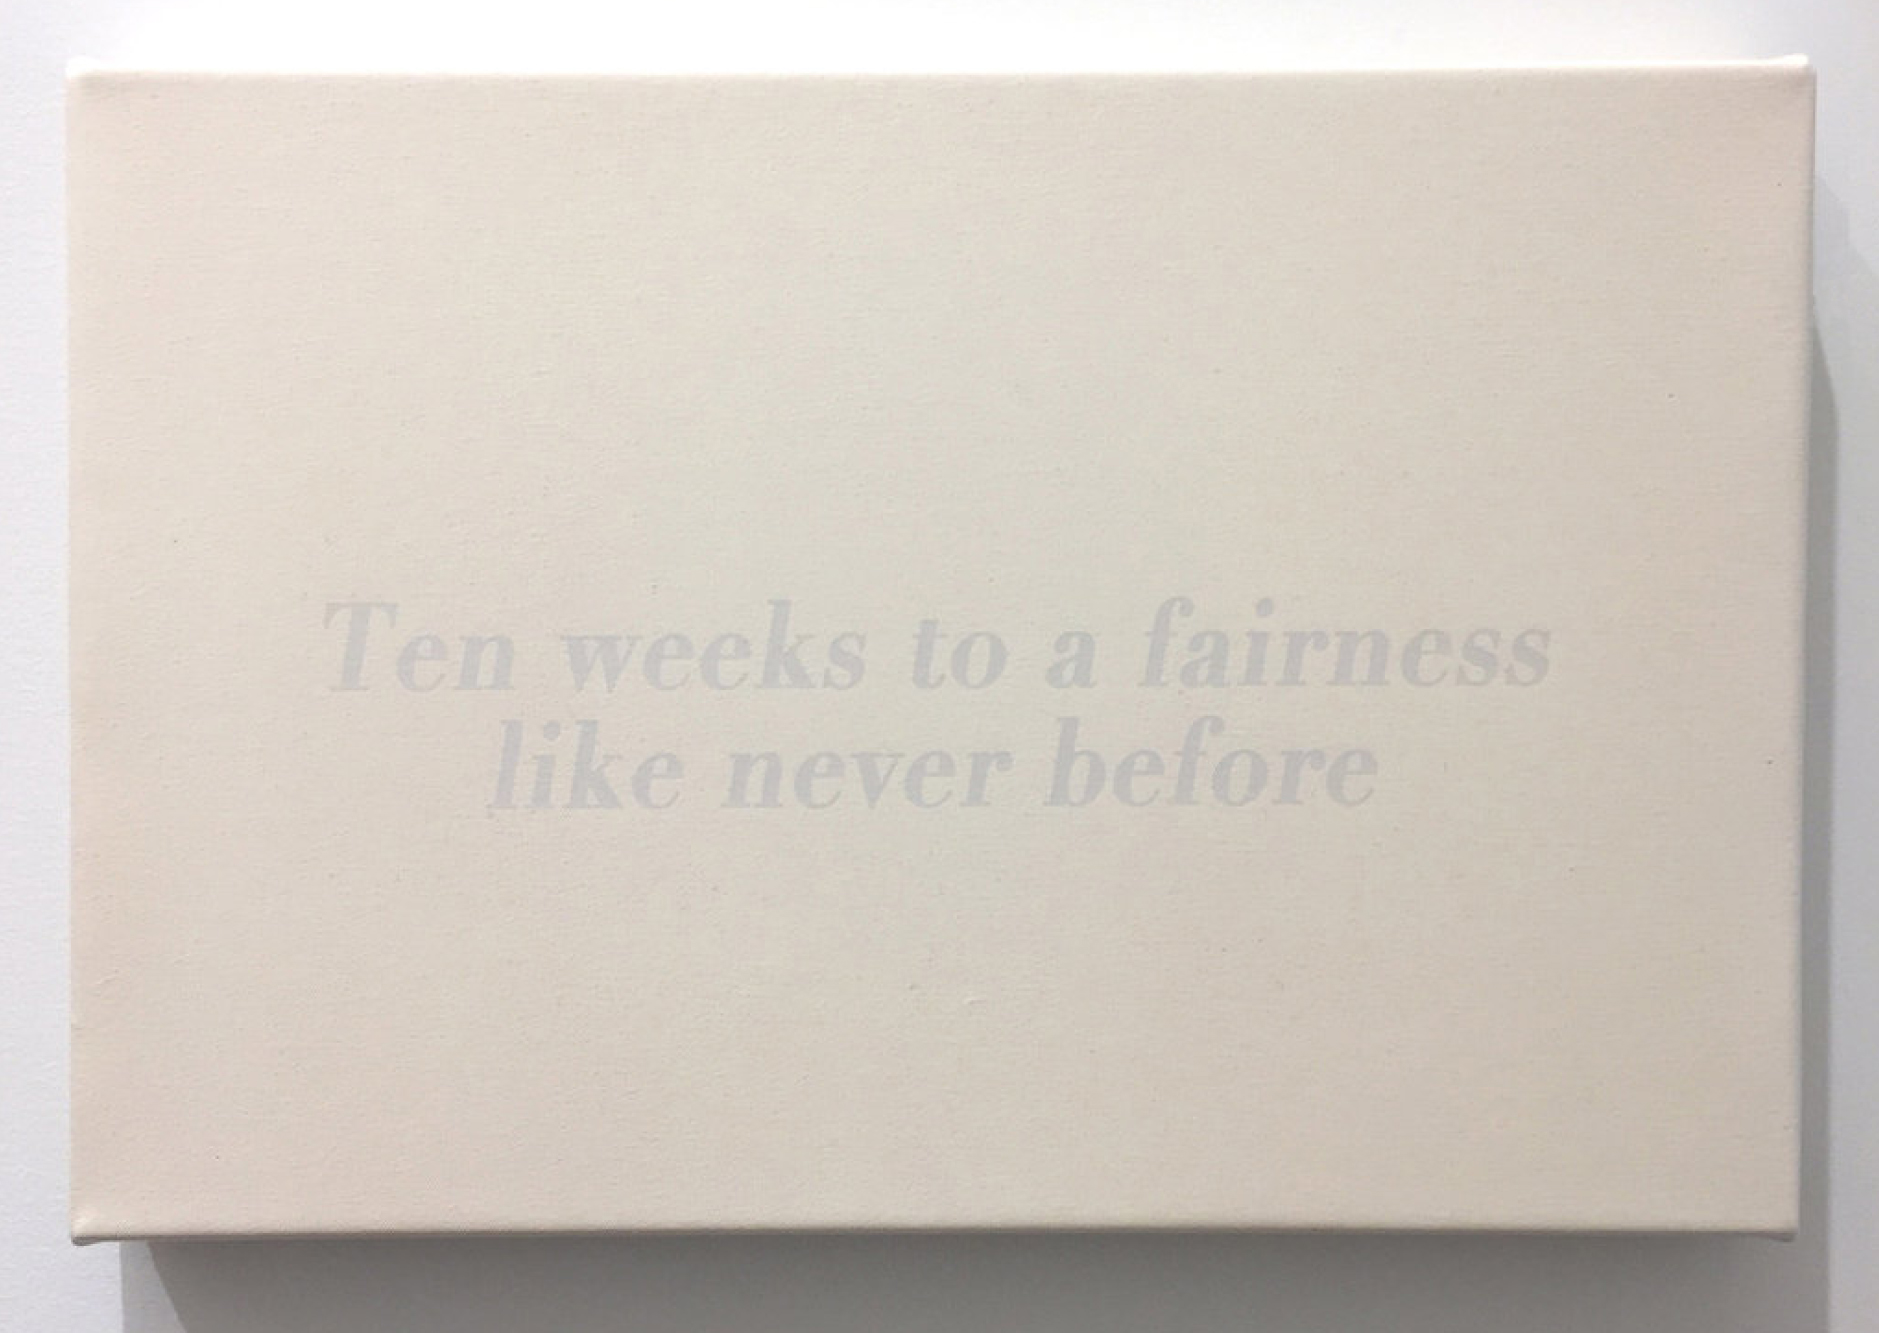 Ten Weeks to a Fairness Like Never Before, 2017 Acrylic and screen print on canvas 12 x 18 nches